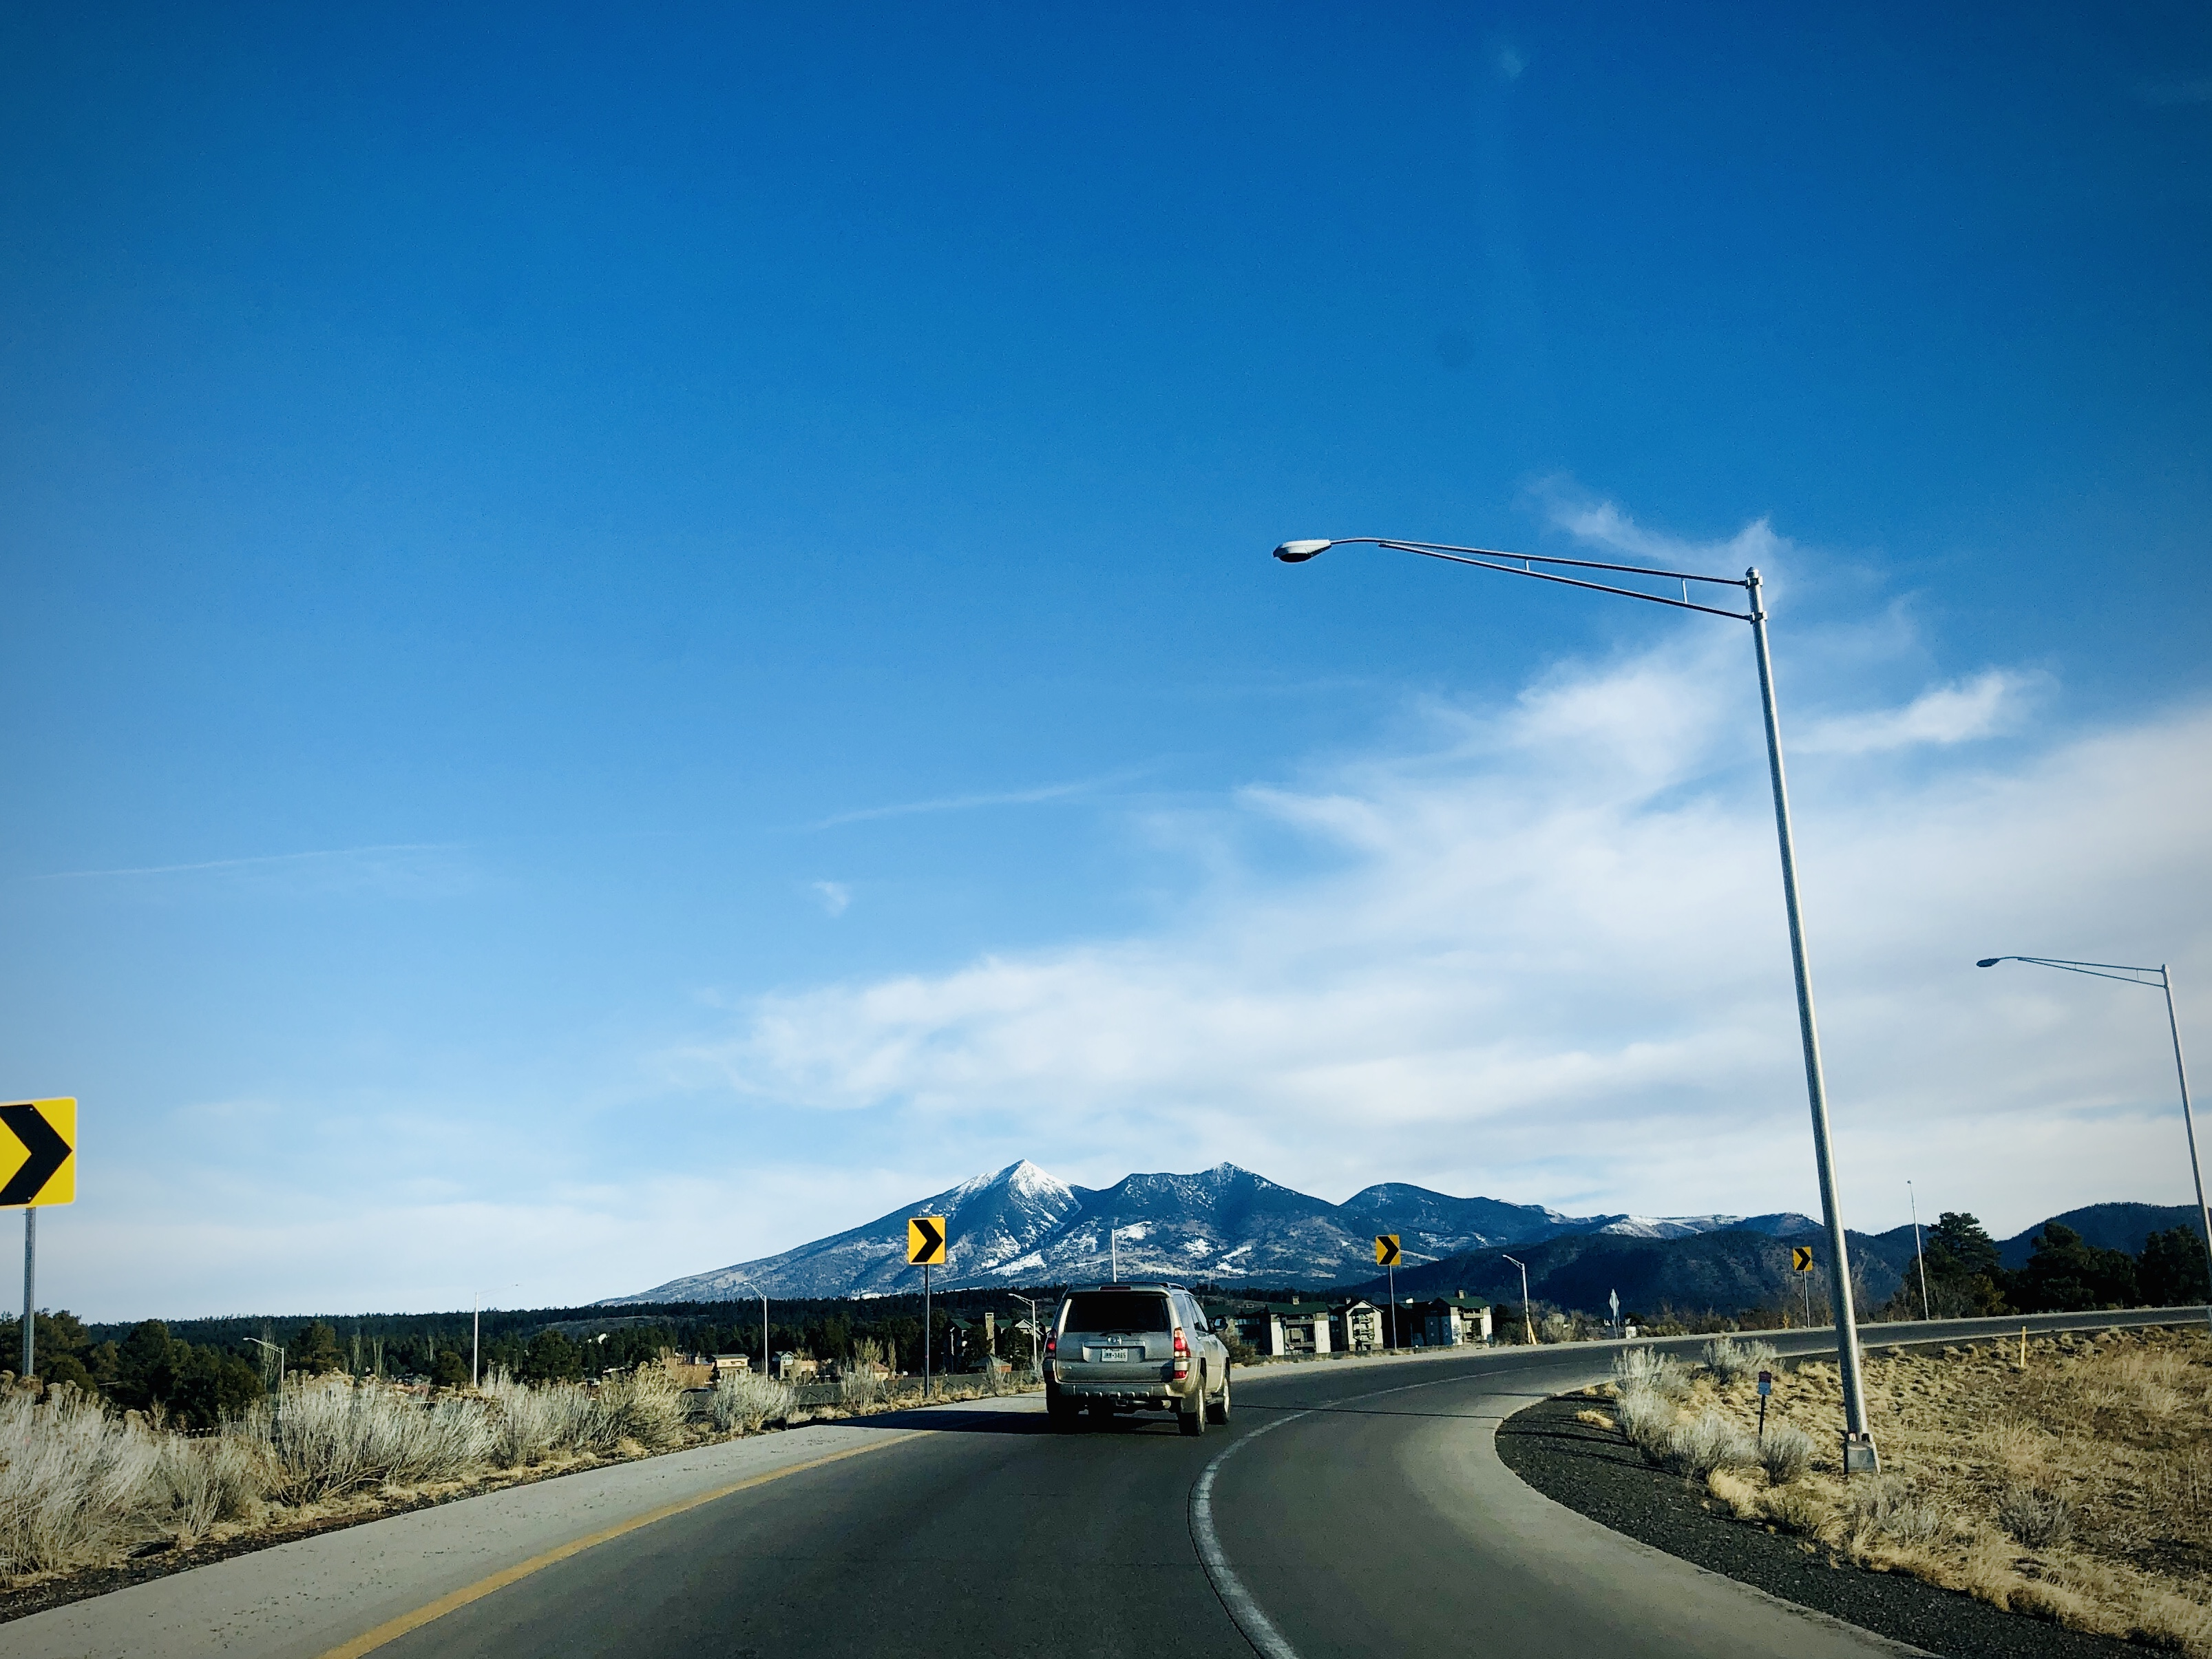 Photo of the San Francisco peaks from a curving highway